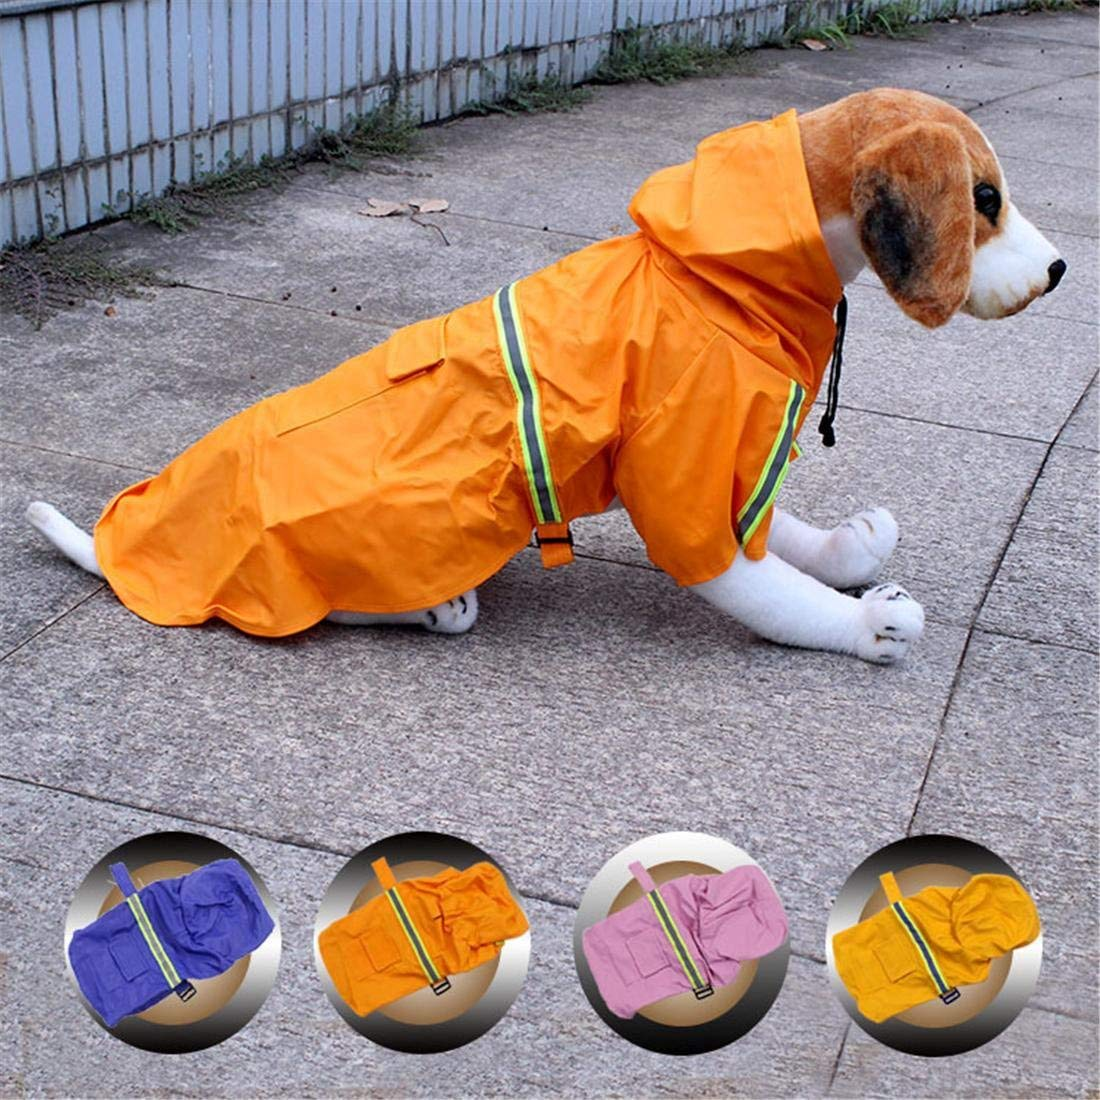 Pet Bed Pet Dog Raincoat Hooded Rain Cover Jacket For Small Medium Large Dog Puppy Summer Winter Rainy Snowy Day Slicker Rainwear Clothes 4 Colors, Blue, 5XL ( Color : Yellow , Size : 5XL )